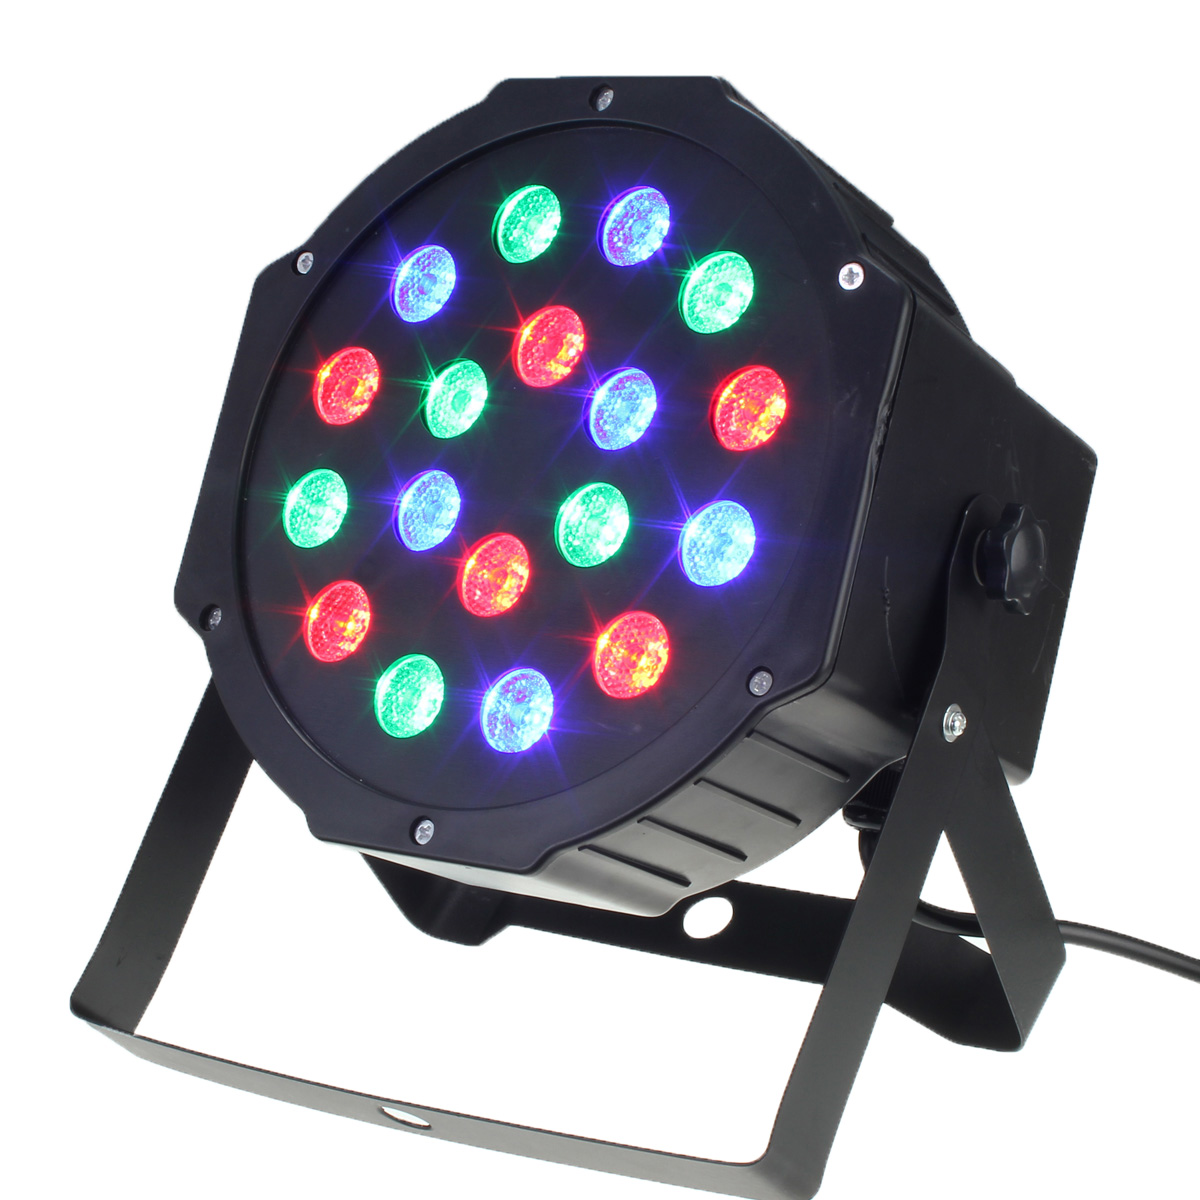 Jiguoor 18W RGB LED Stage Light Par DMX-512 Lighting Laser Projector Party DJ Lamp for DJ Party Disco AC110 - 220V Power plug dmx 512 rgb led stage light 12w sound active stage lighting effect laser strobe projector lamp for party dj disco ac90 240v